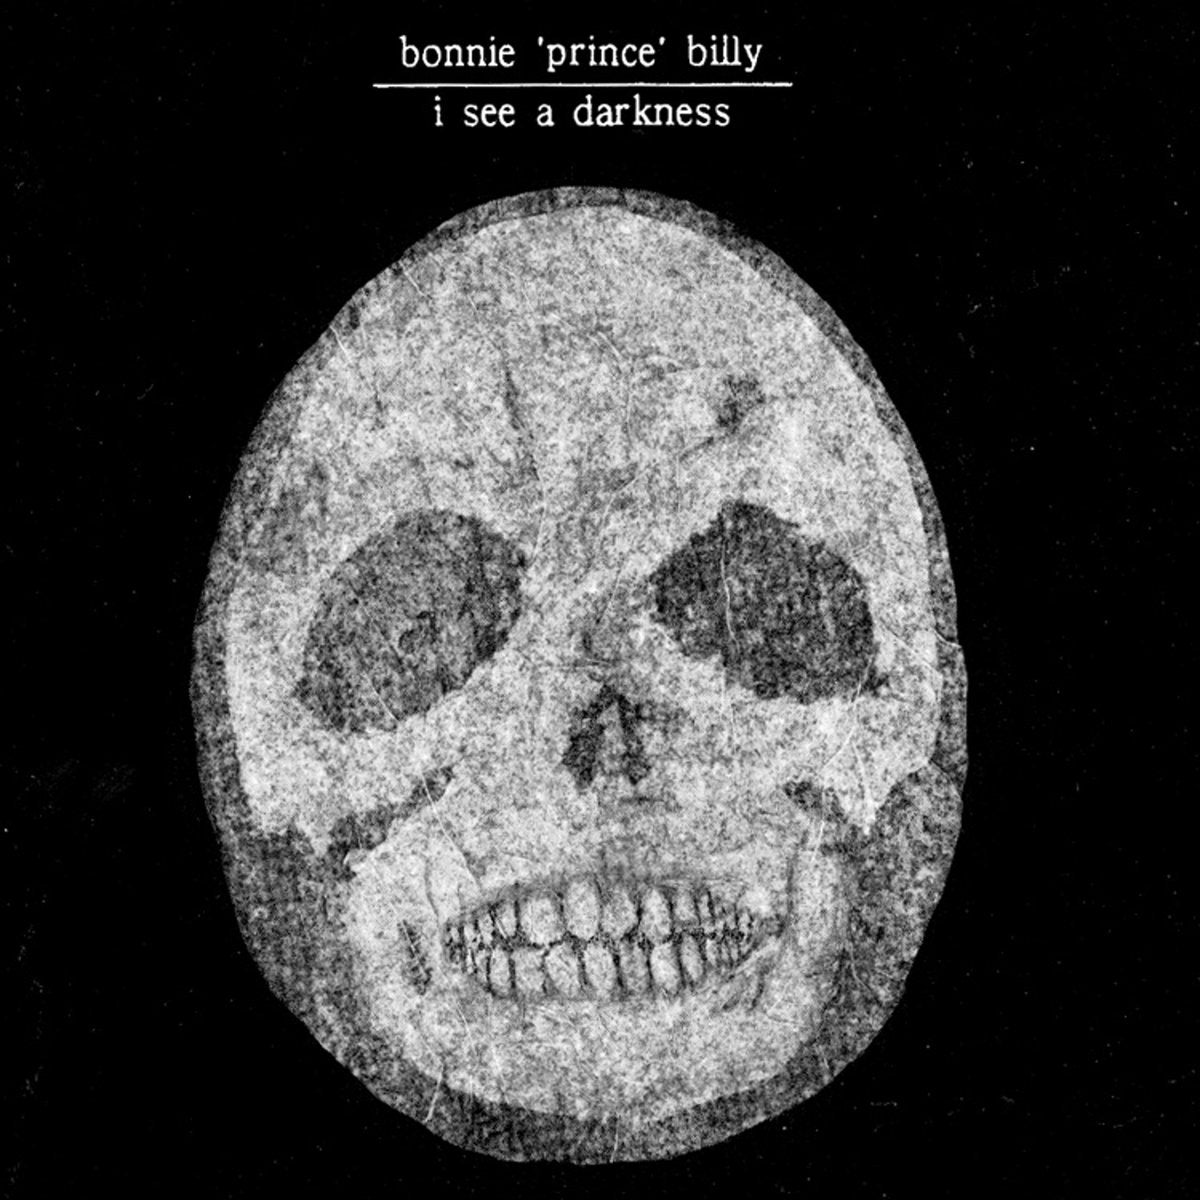 Bonnie 'Prince' Billy - I See a Darkness LP - Vinyl